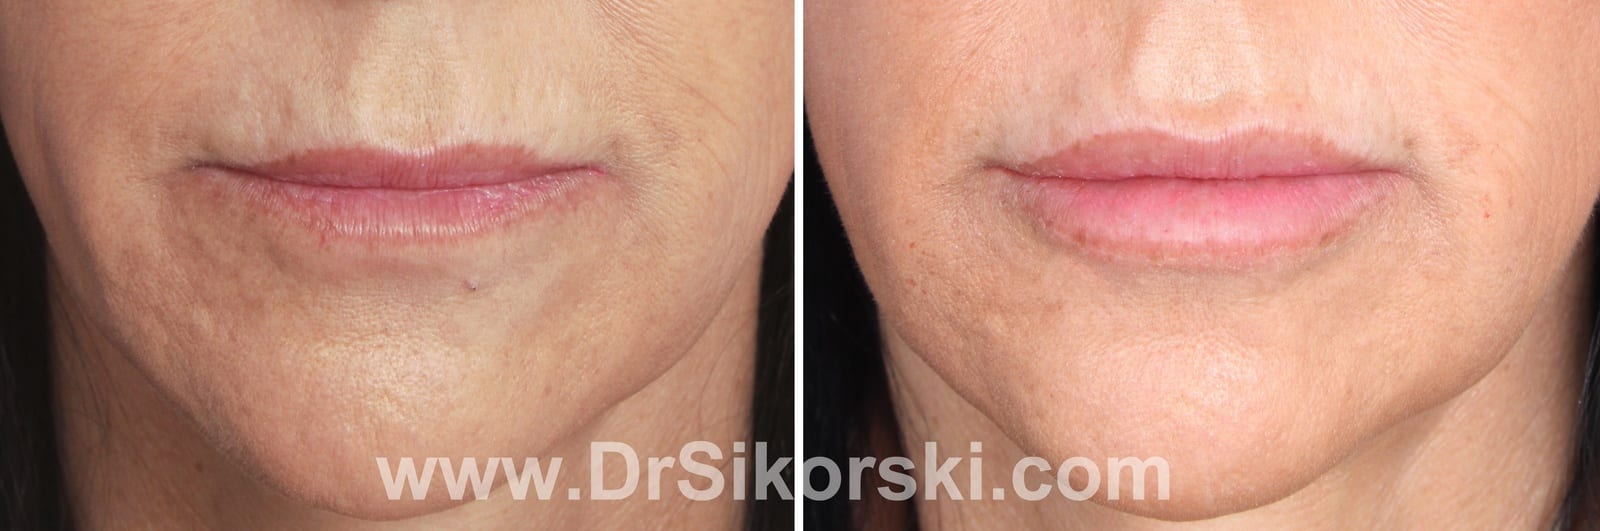 Restylane Orange County Before and After Patient B